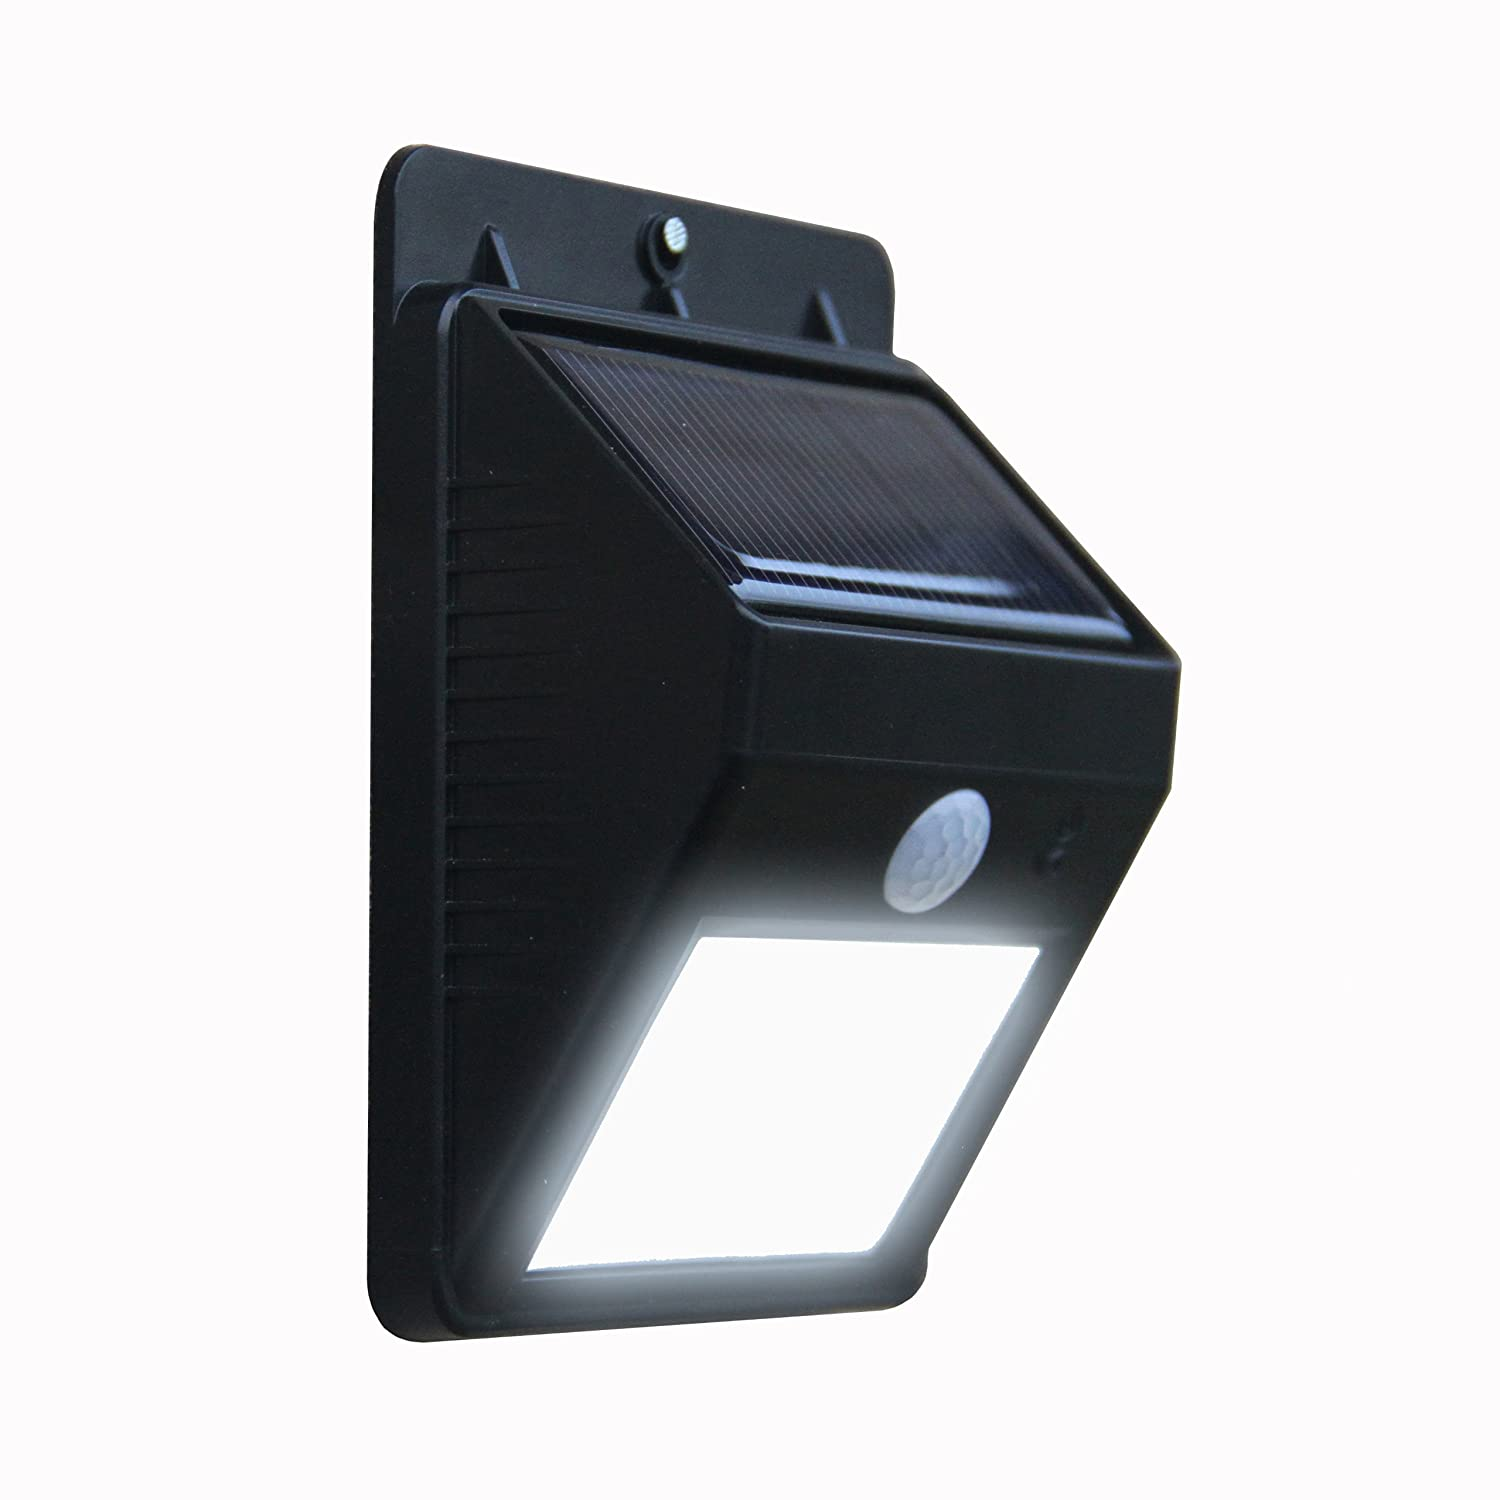 led outdoor light is a high quality light suitable as a security light. Black Bedroom Furniture Sets. Home Design Ideas